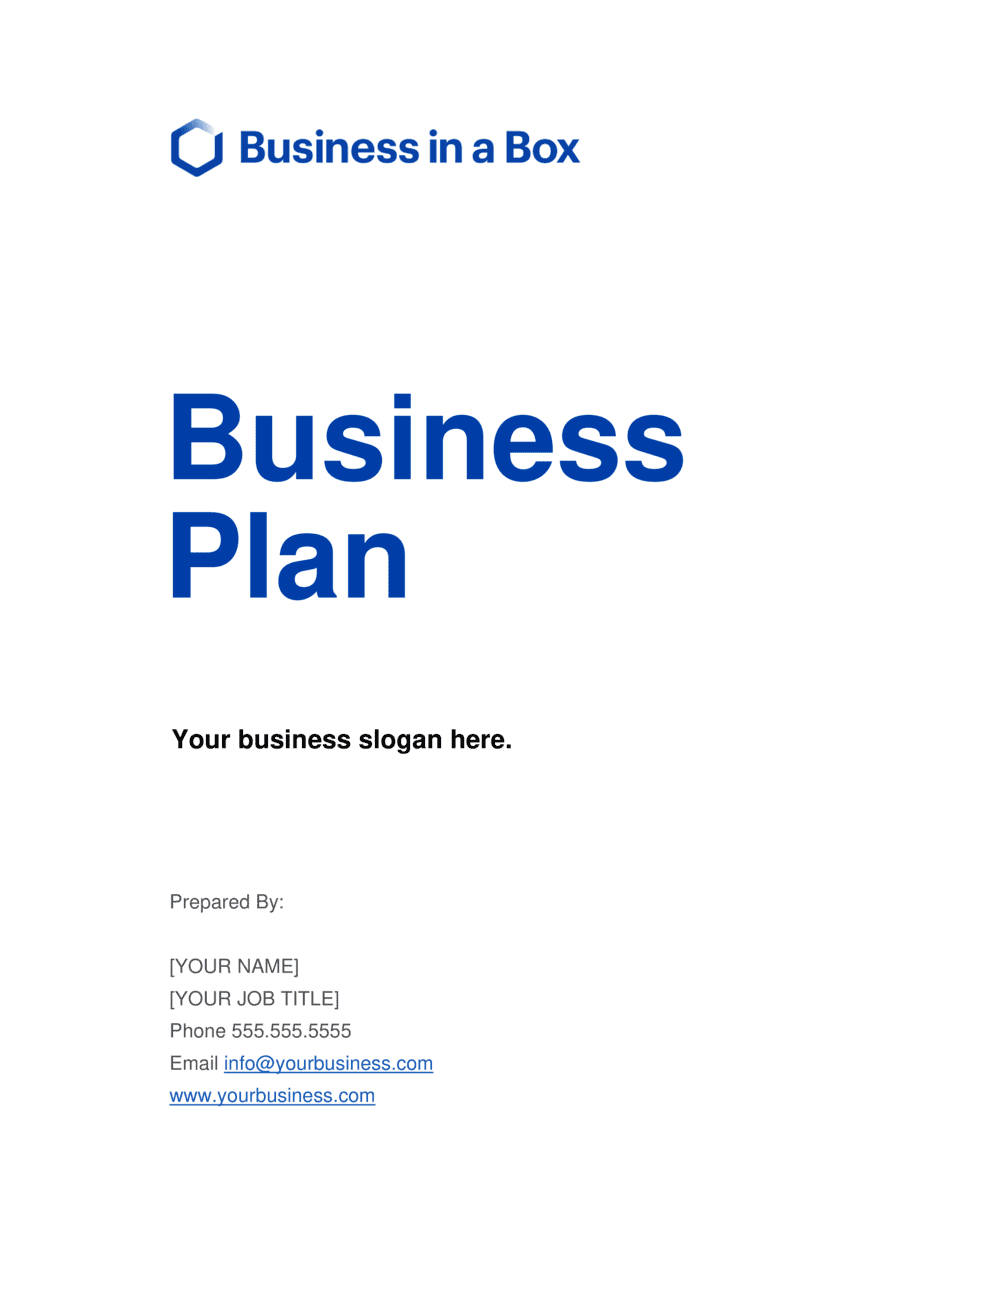 Business-in-a-Box's Business Plan Template